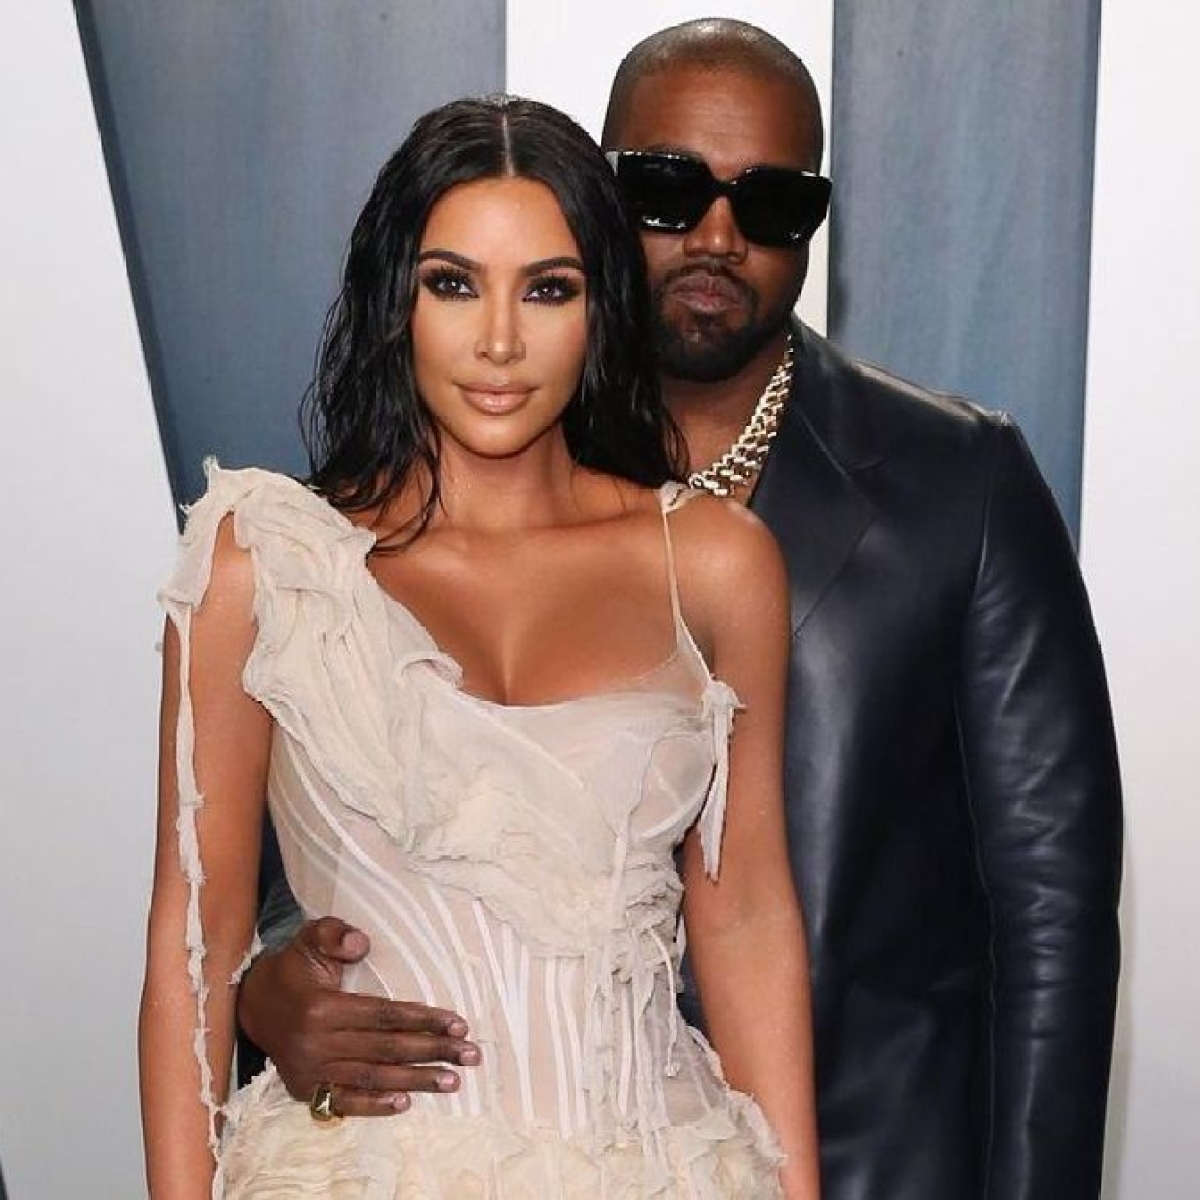 'The marriage is over': Kanye West 'anxious and sad' after divorce from Kim Kardashian